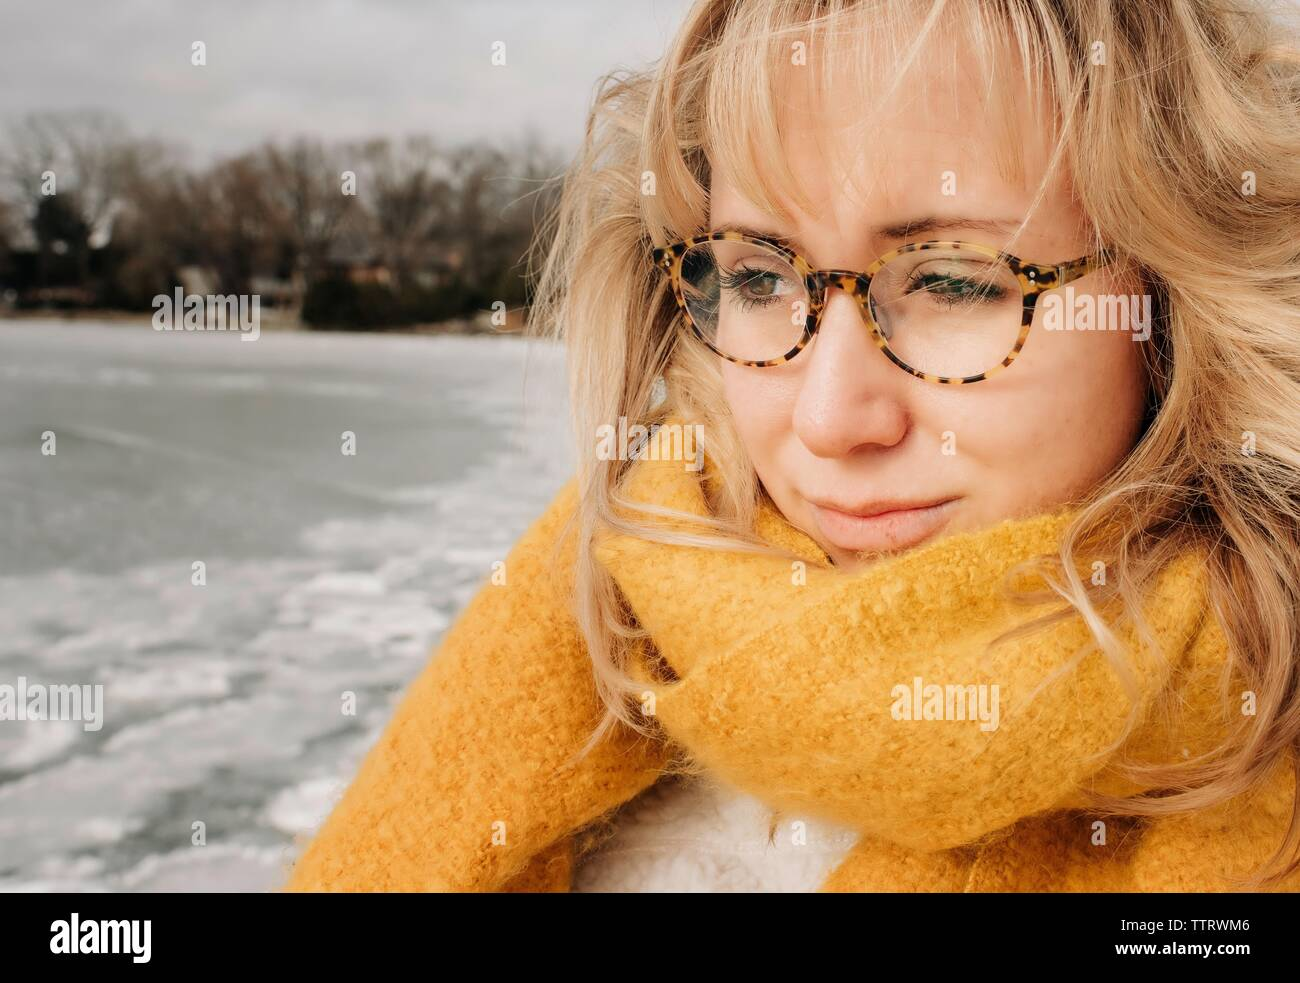 portrait of blonde woman with glasses looking out at the water smiling Stock Photo